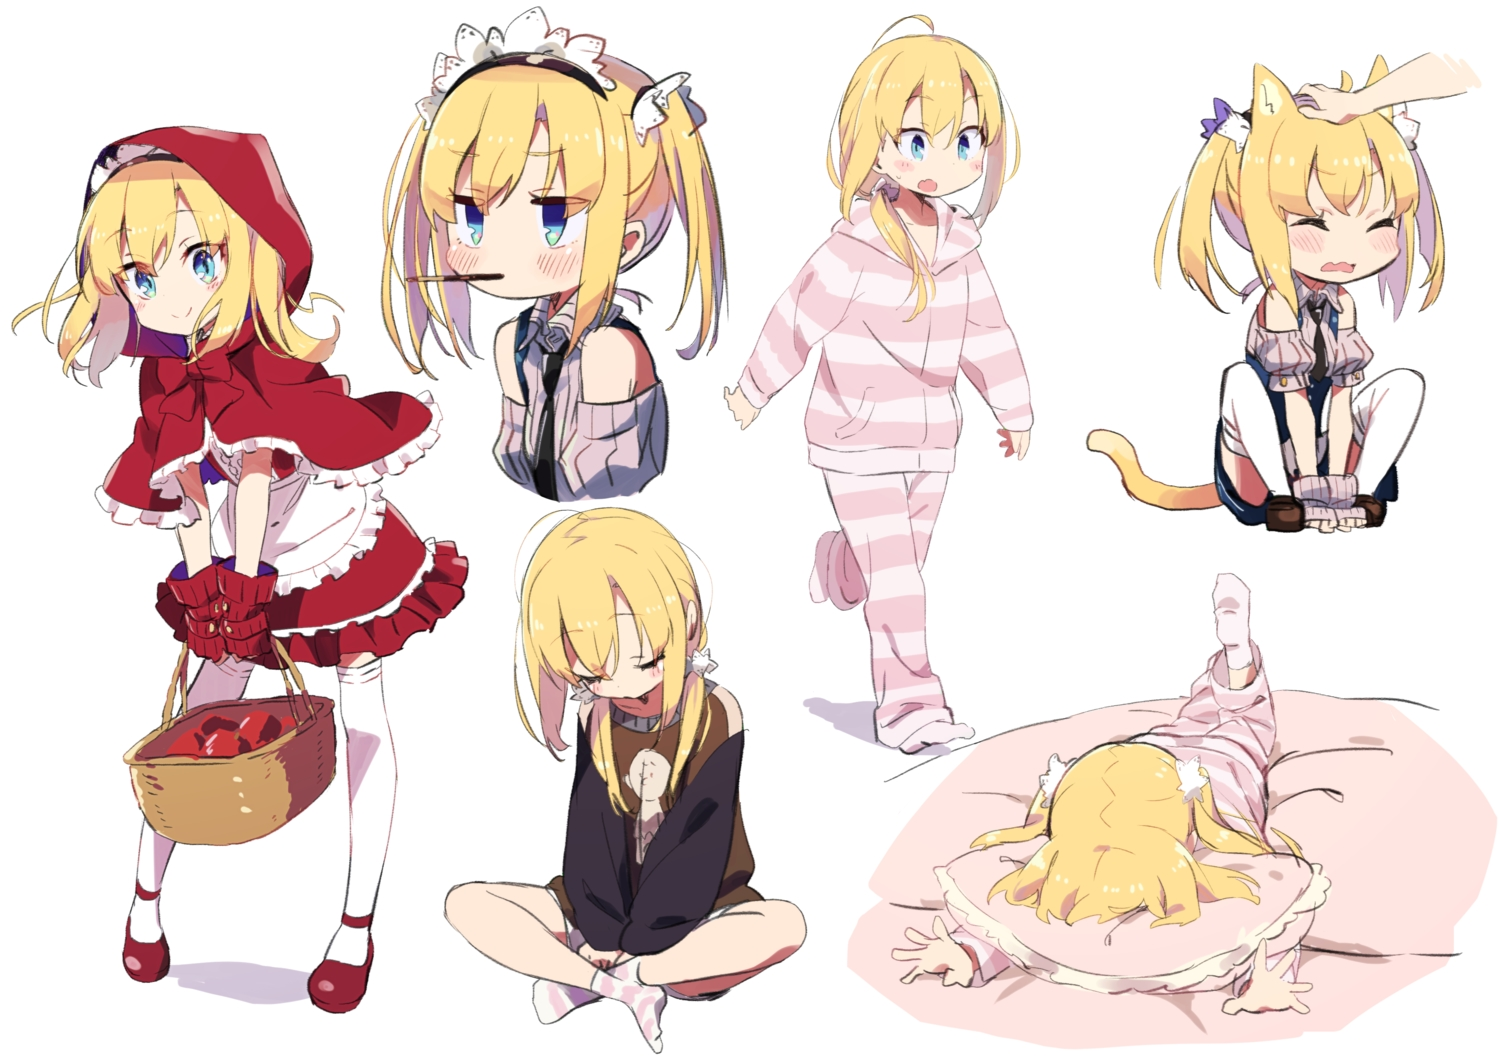 amaryllis_class animal_ears apple apron aqua_eyes bed blonde_hair candy cape catgirl chocolate cosplay dress food fruit gloves headdress hoodie kotohara_hinari little_red_riding_hood loli lolita_fashion long_hair pocky ponytail shorts sleeping socks tail tama_(tama-s) thighhighs tie twintails white